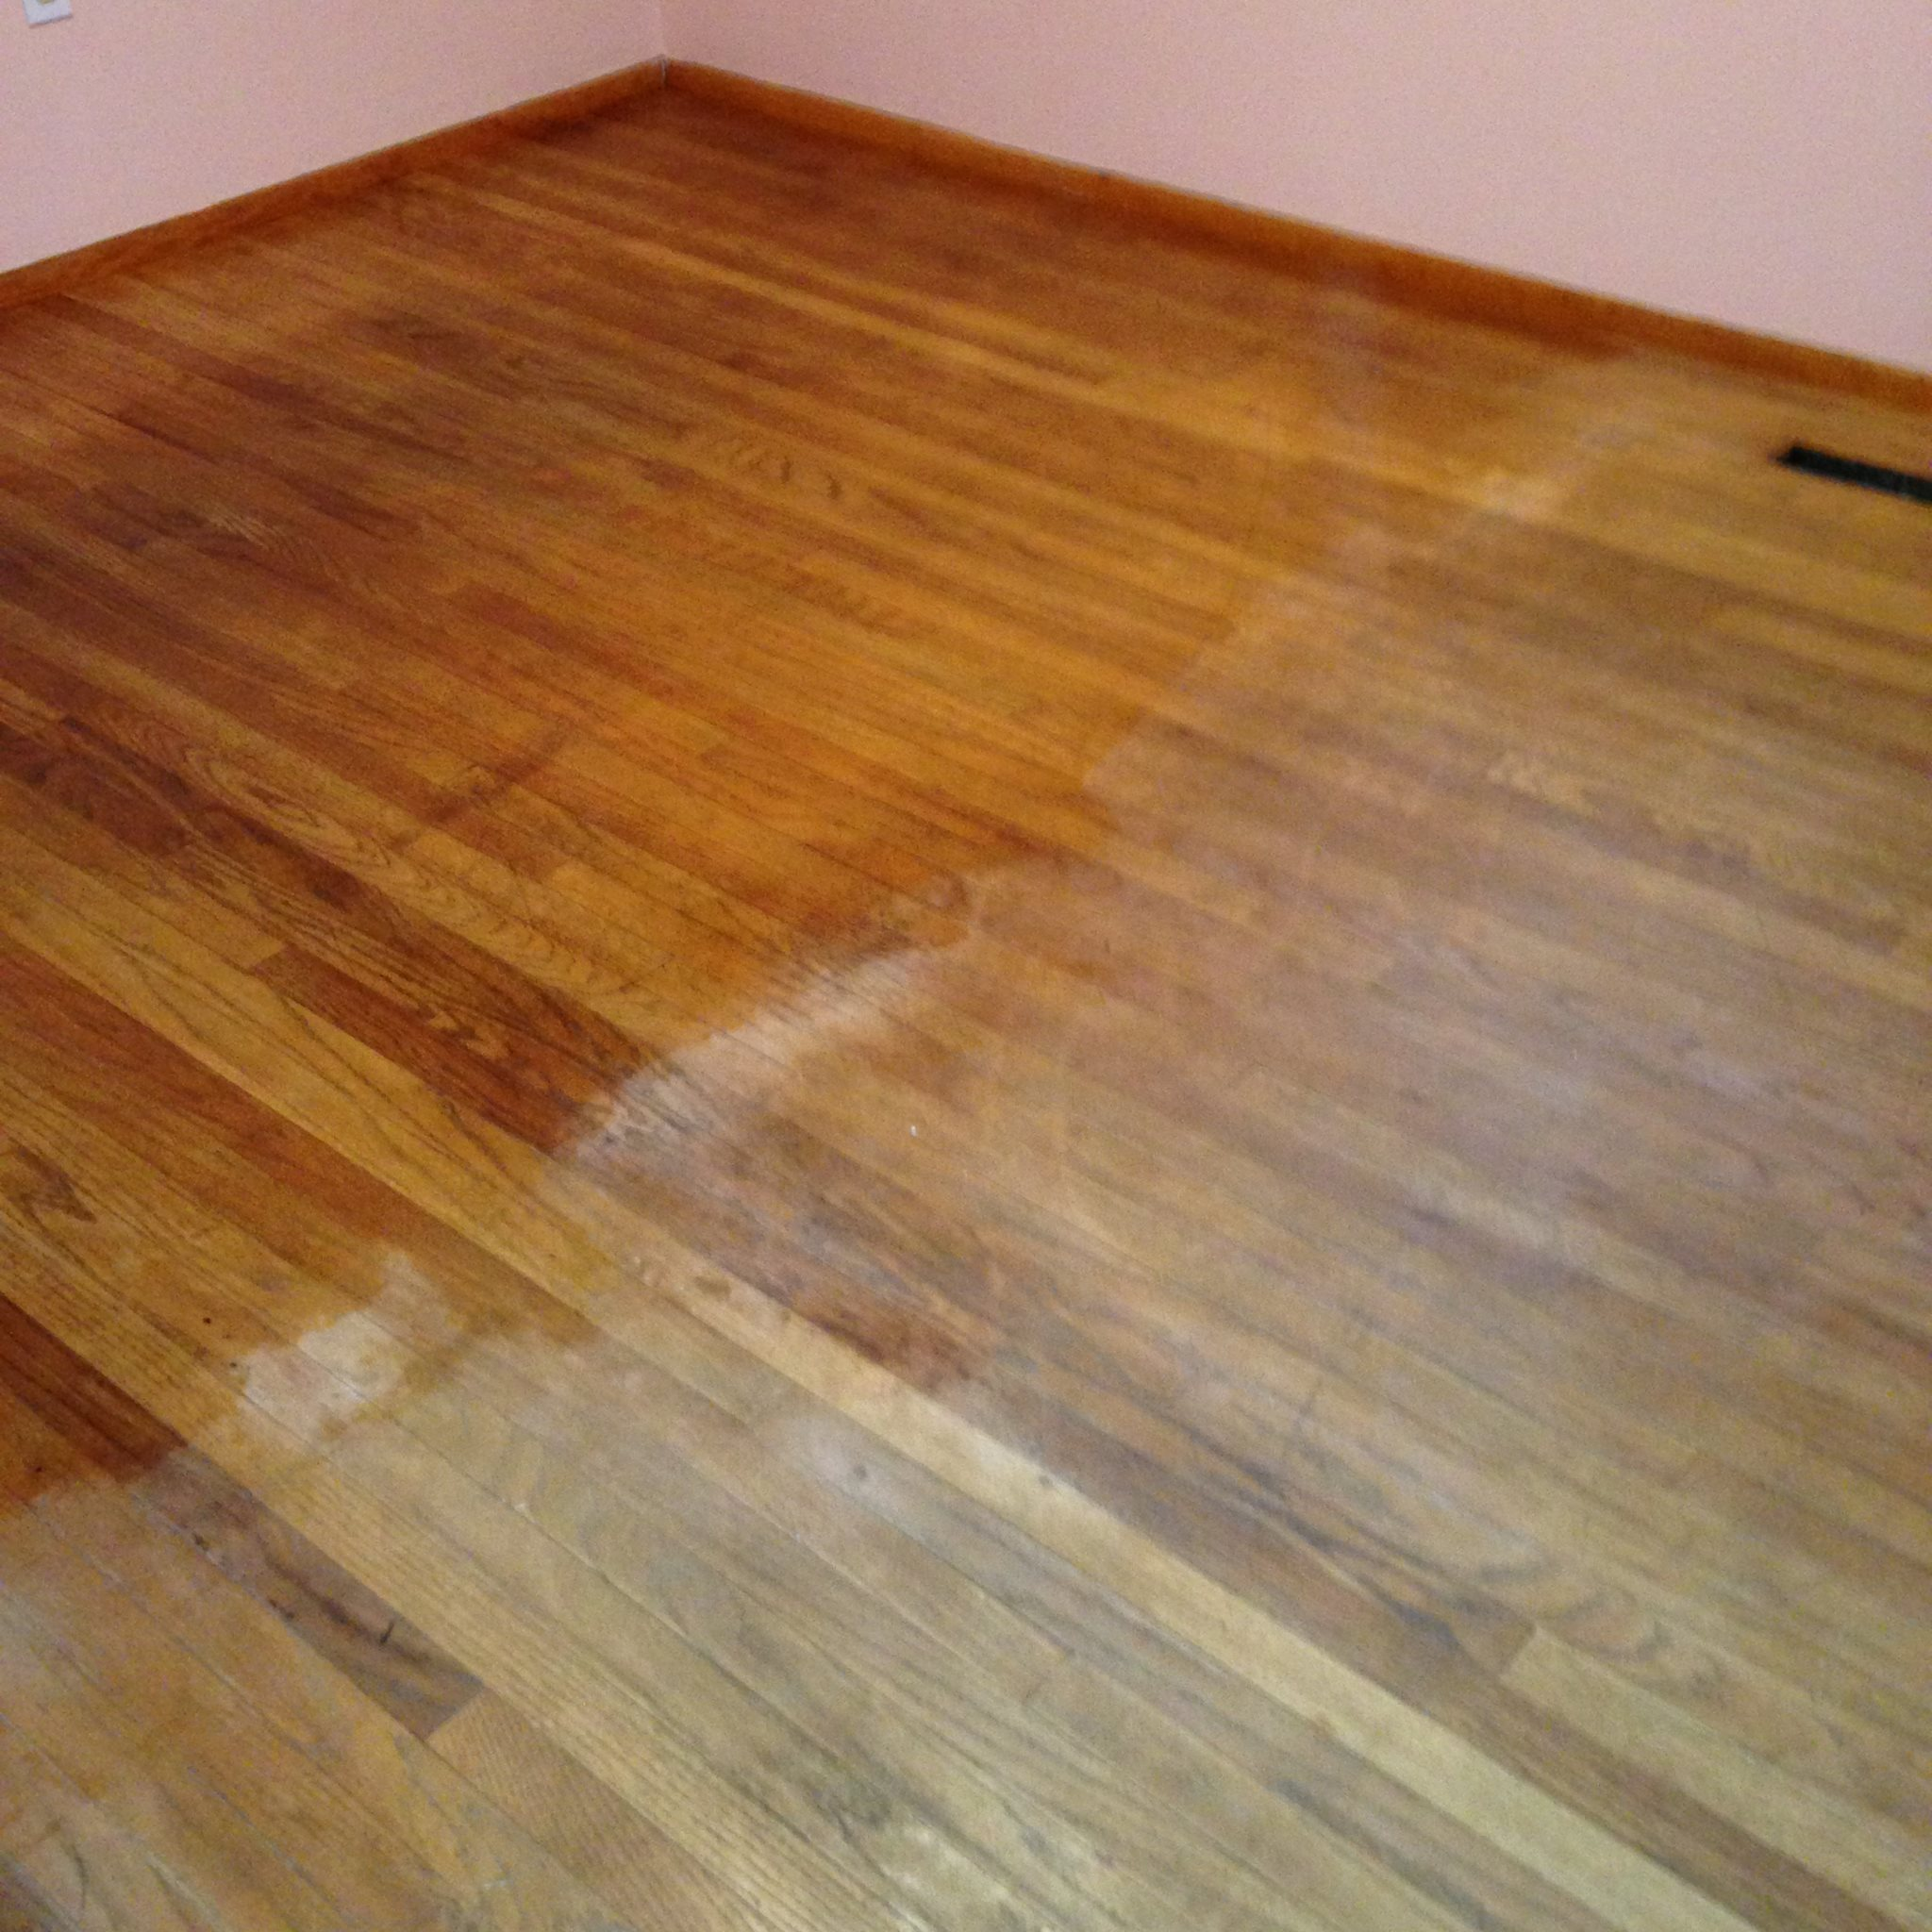 15 wood floor hacks every homeowner needs to know for Old english floor